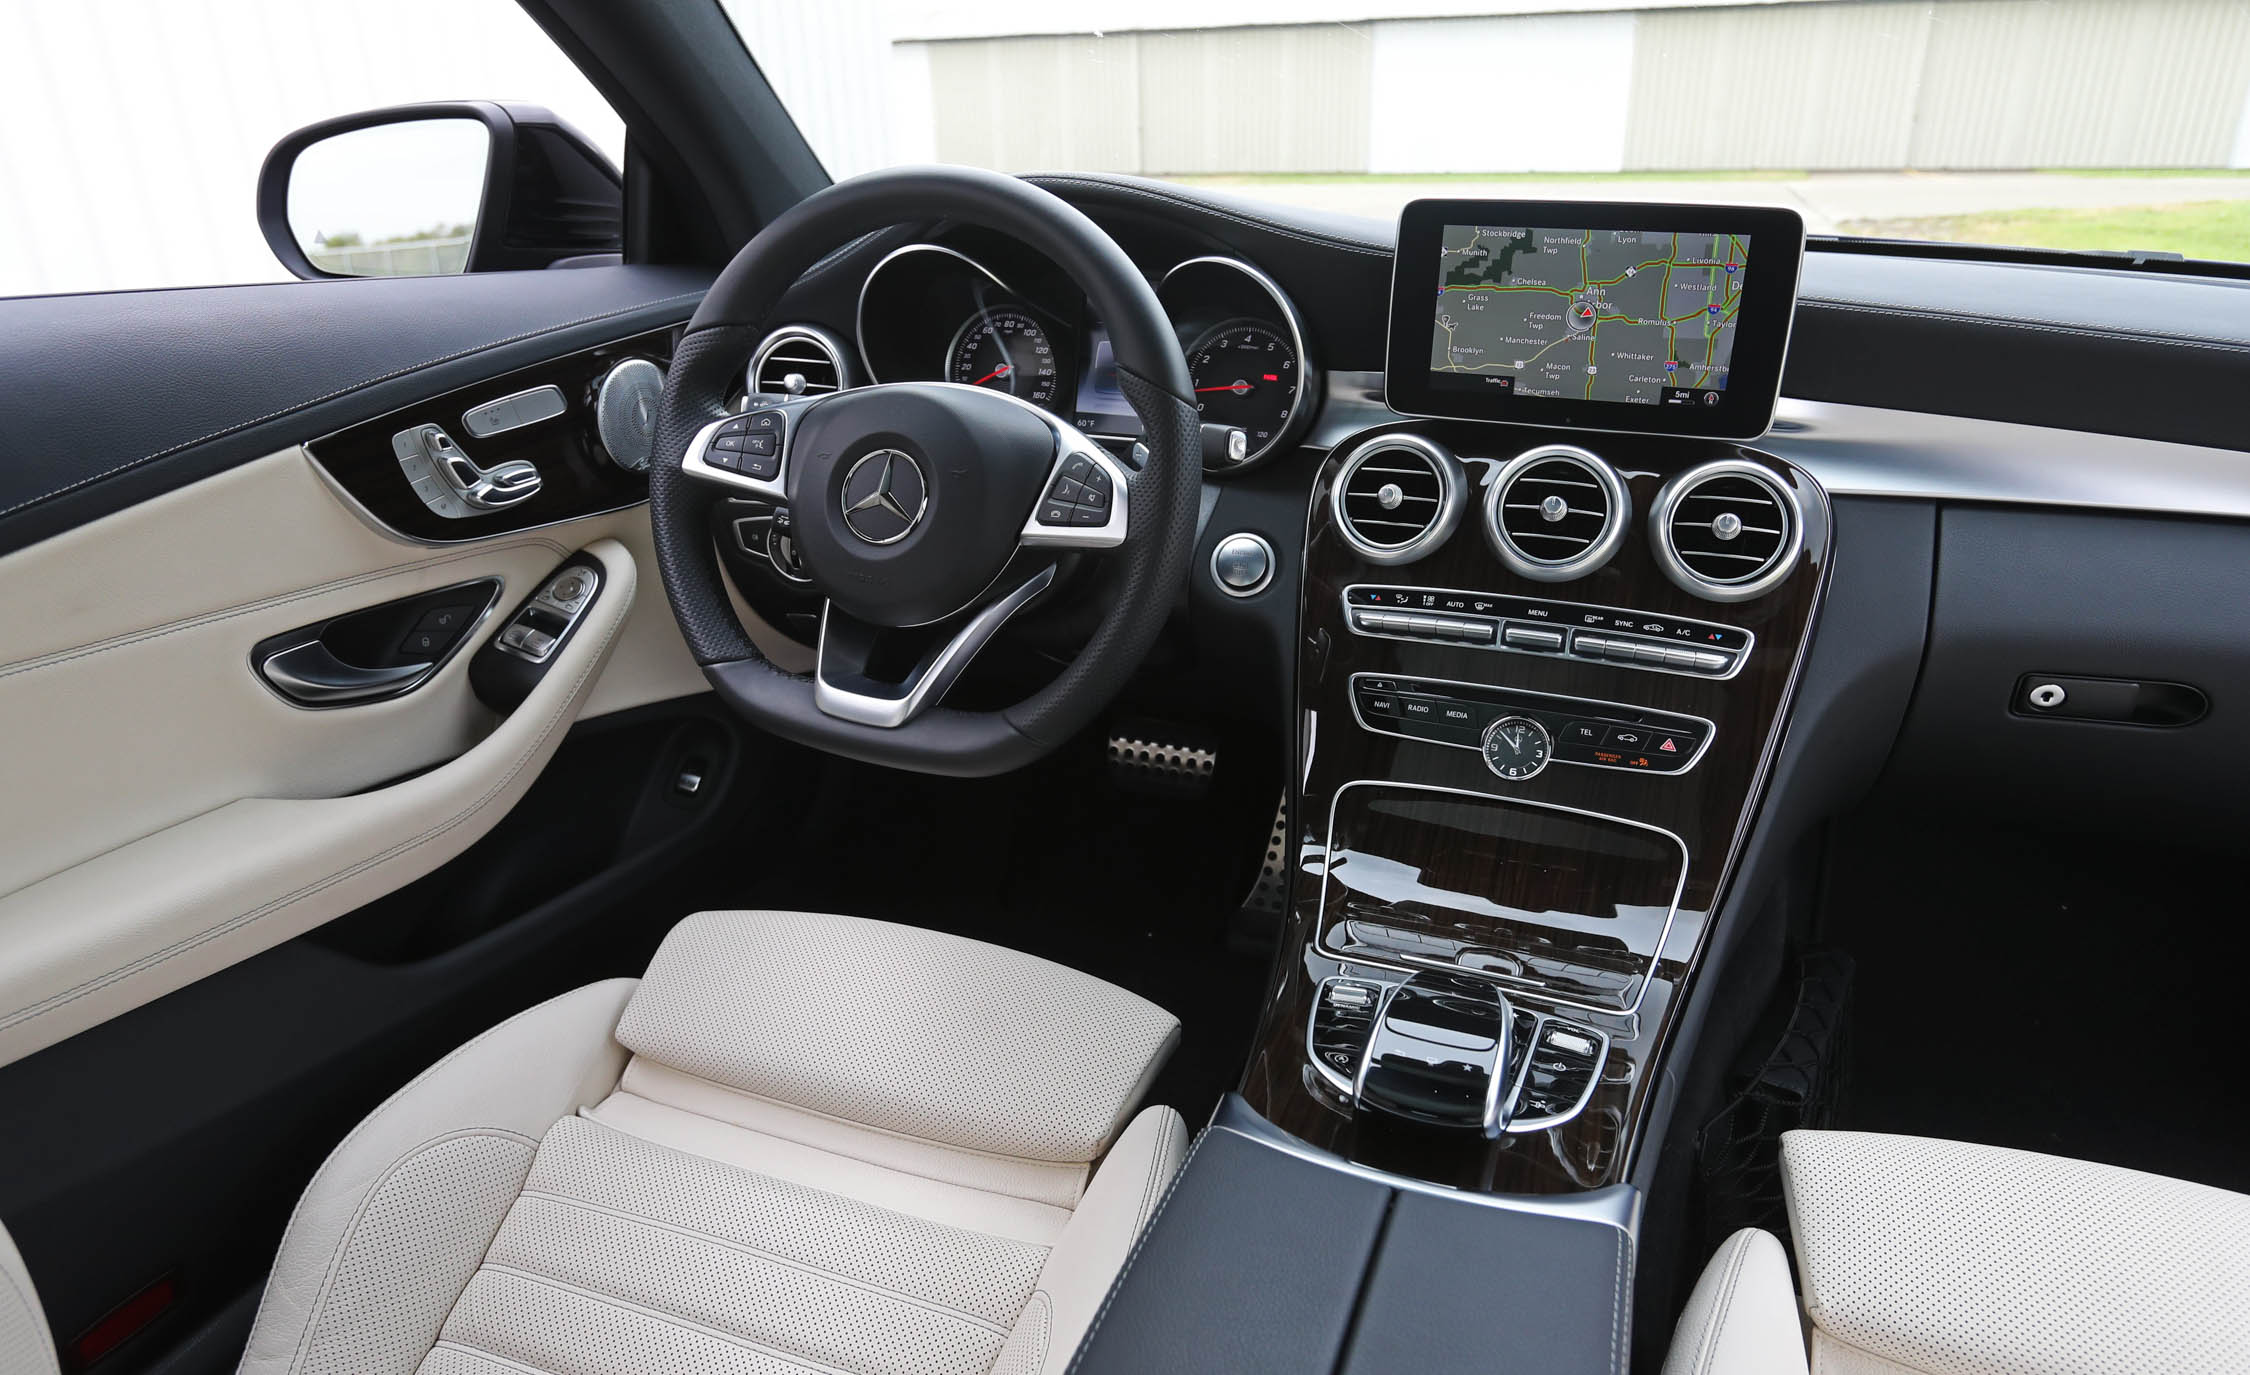 Mercedes benz c300 interior accessories best accessories for Mercedes benz c300 accessories